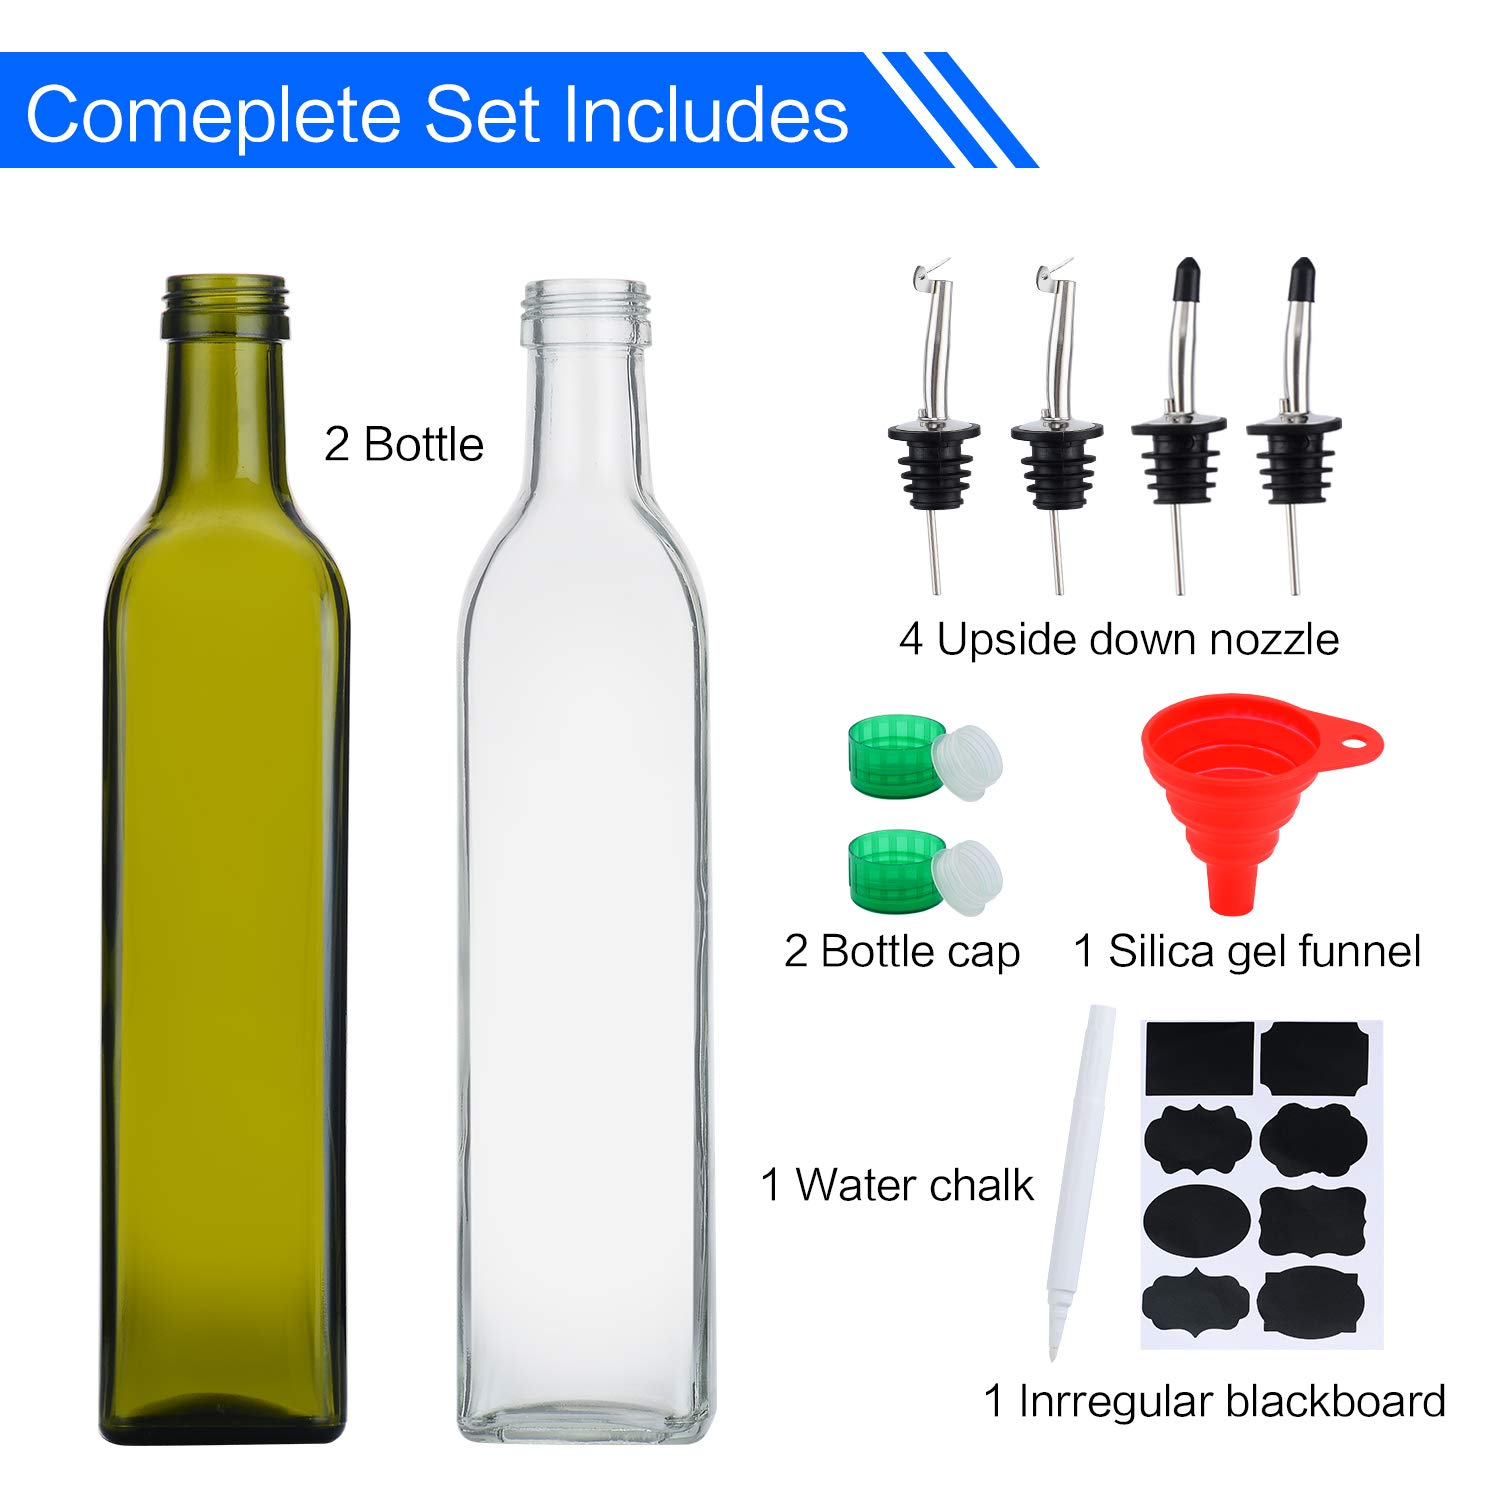 17oz Glass Olive Oil Bottle and Vinegar Cruet Sets, 500ml Oil Dispenser & Vinegar Cruet with Pourers Spout and Funnel for Kitchen